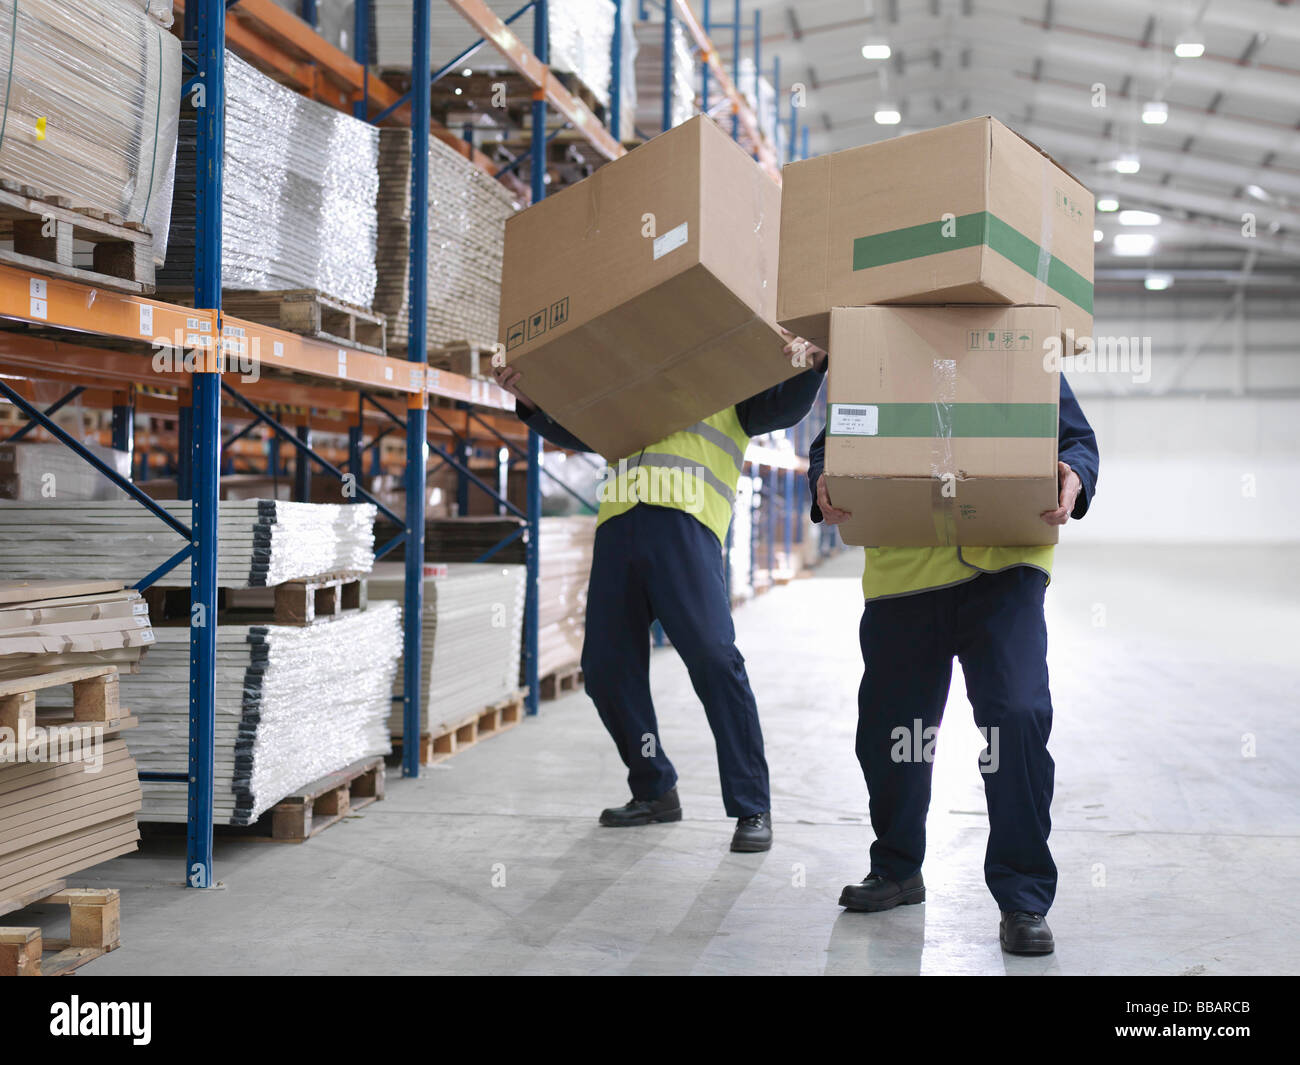 Men Struggling With Boxes In Warehouse - Stock Image